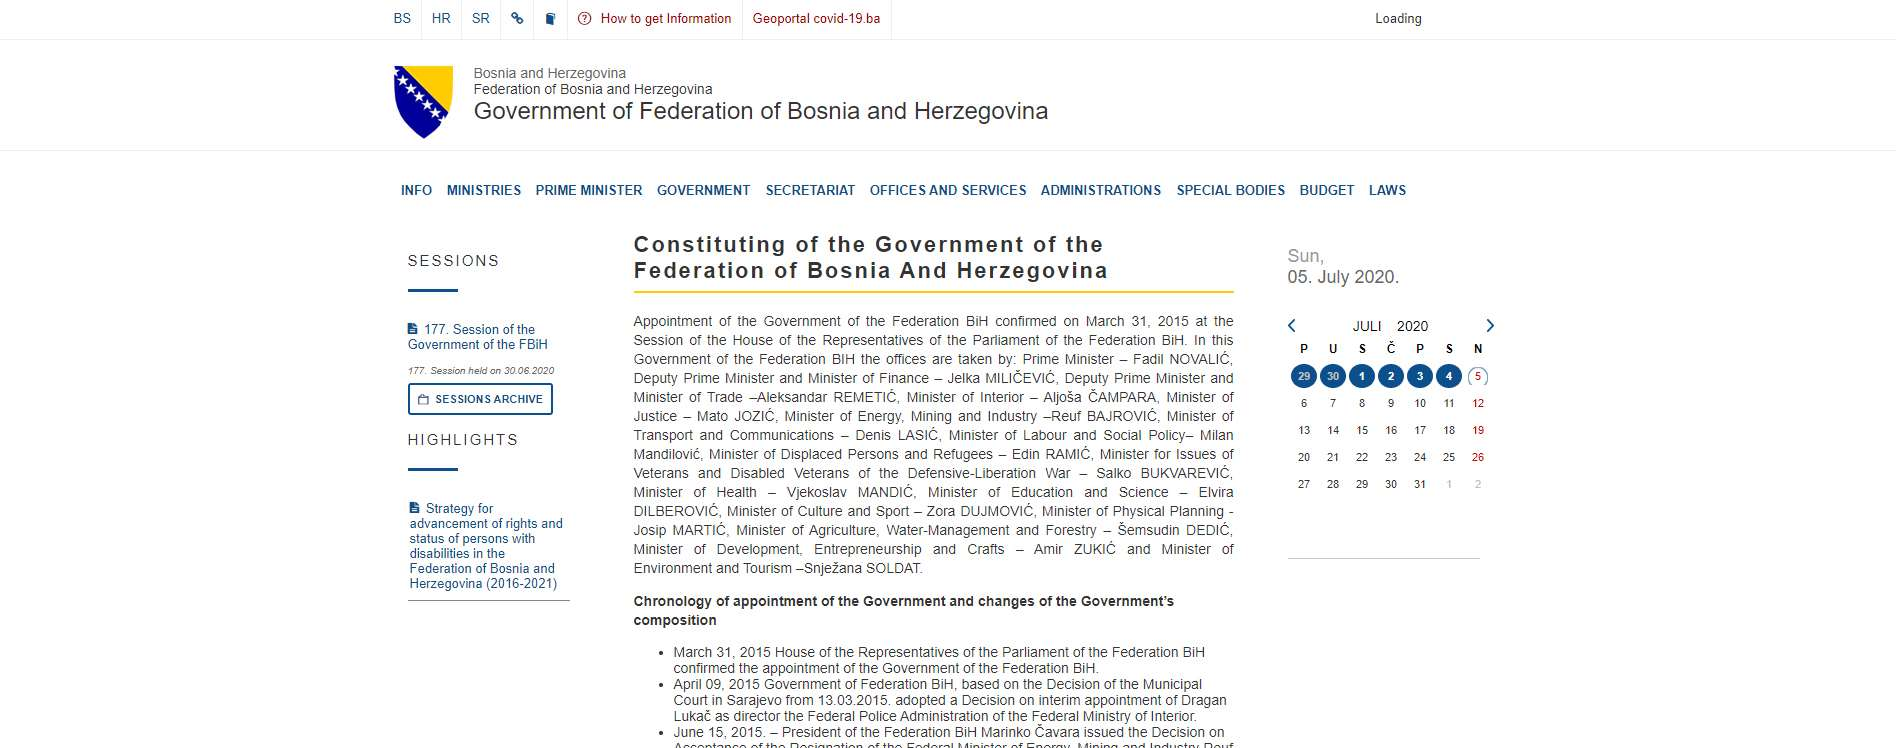 Government of Federation of Bosnia and Herzegovina